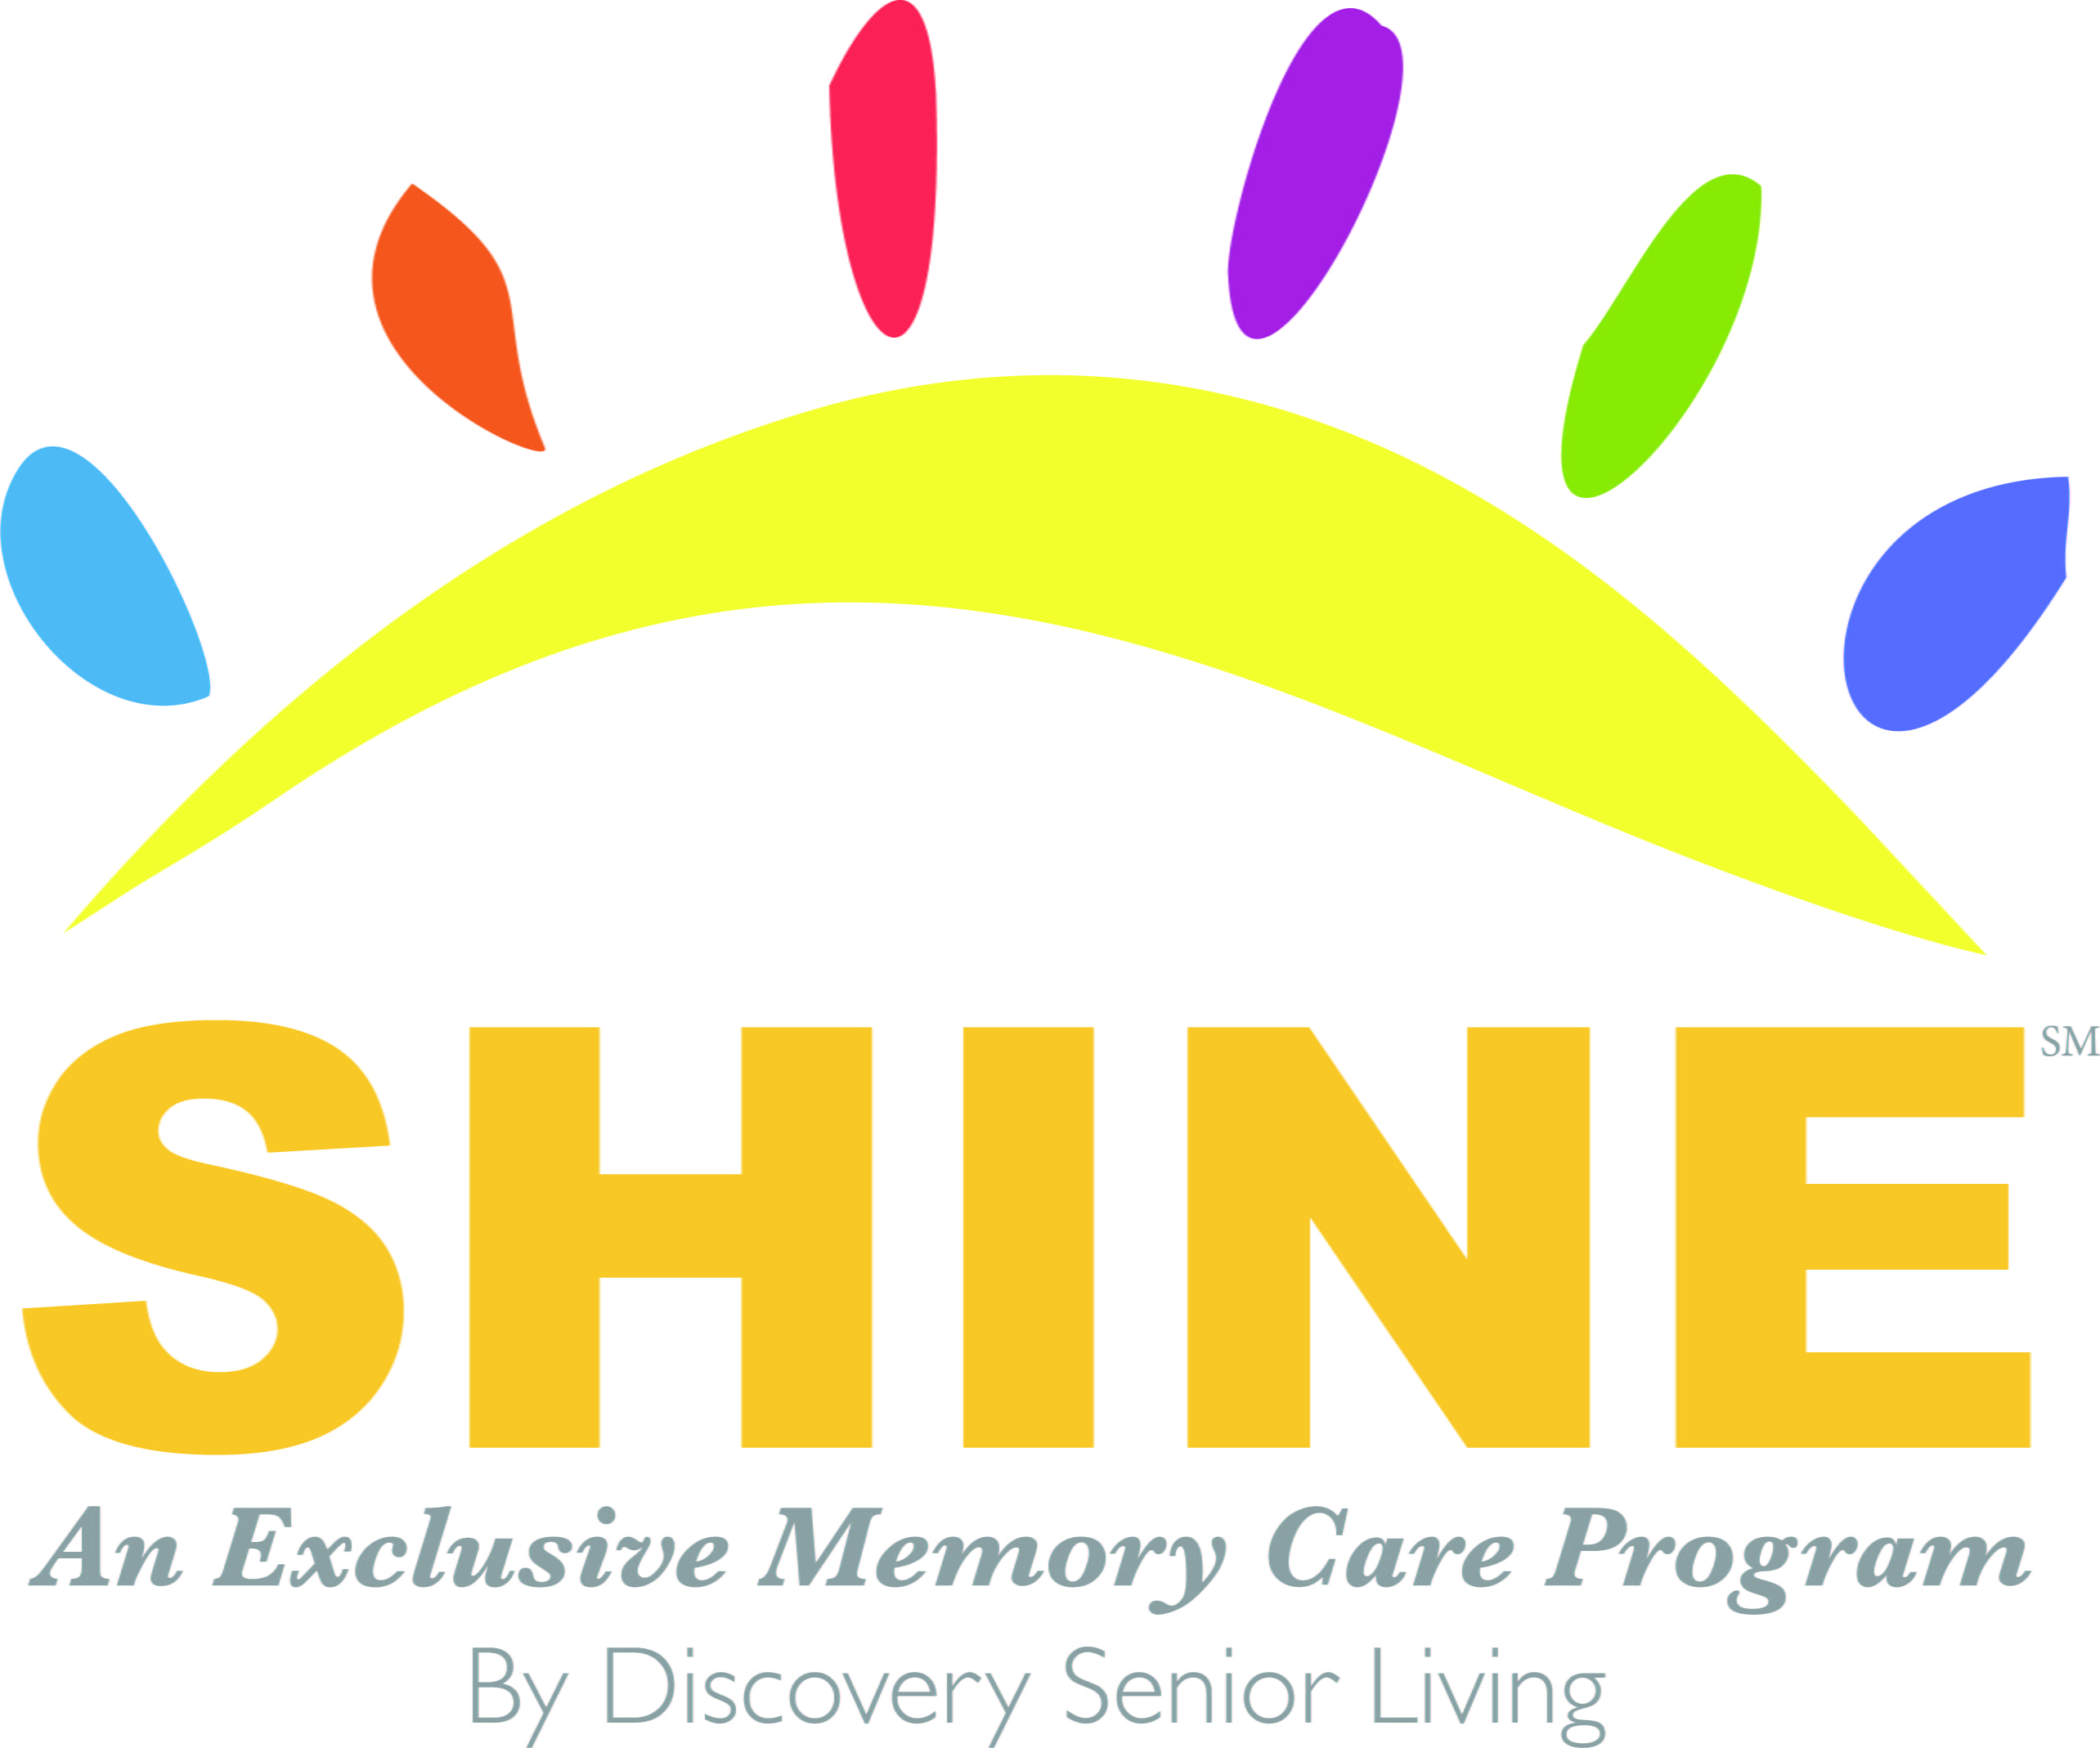 New, Exclusive SHINE℠ Memory Care Program Debuts at Three Dallas-Area Communities